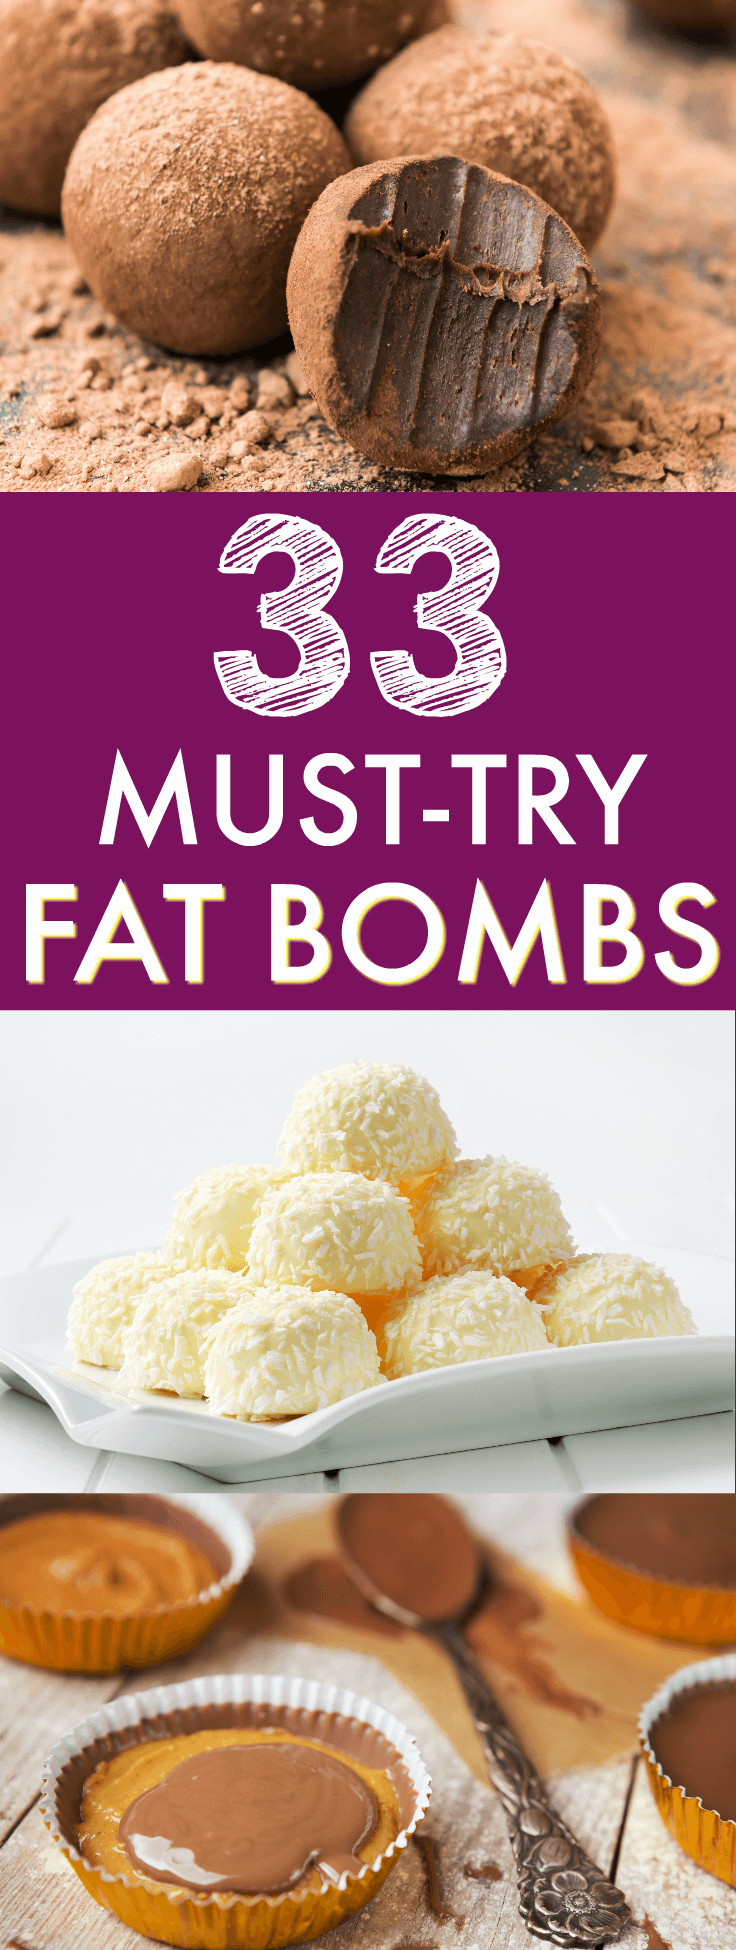 Ketosis Diet Fat Bombs  33 Delicious Fat Bombs Recipes for Keto or Low Carb Diets